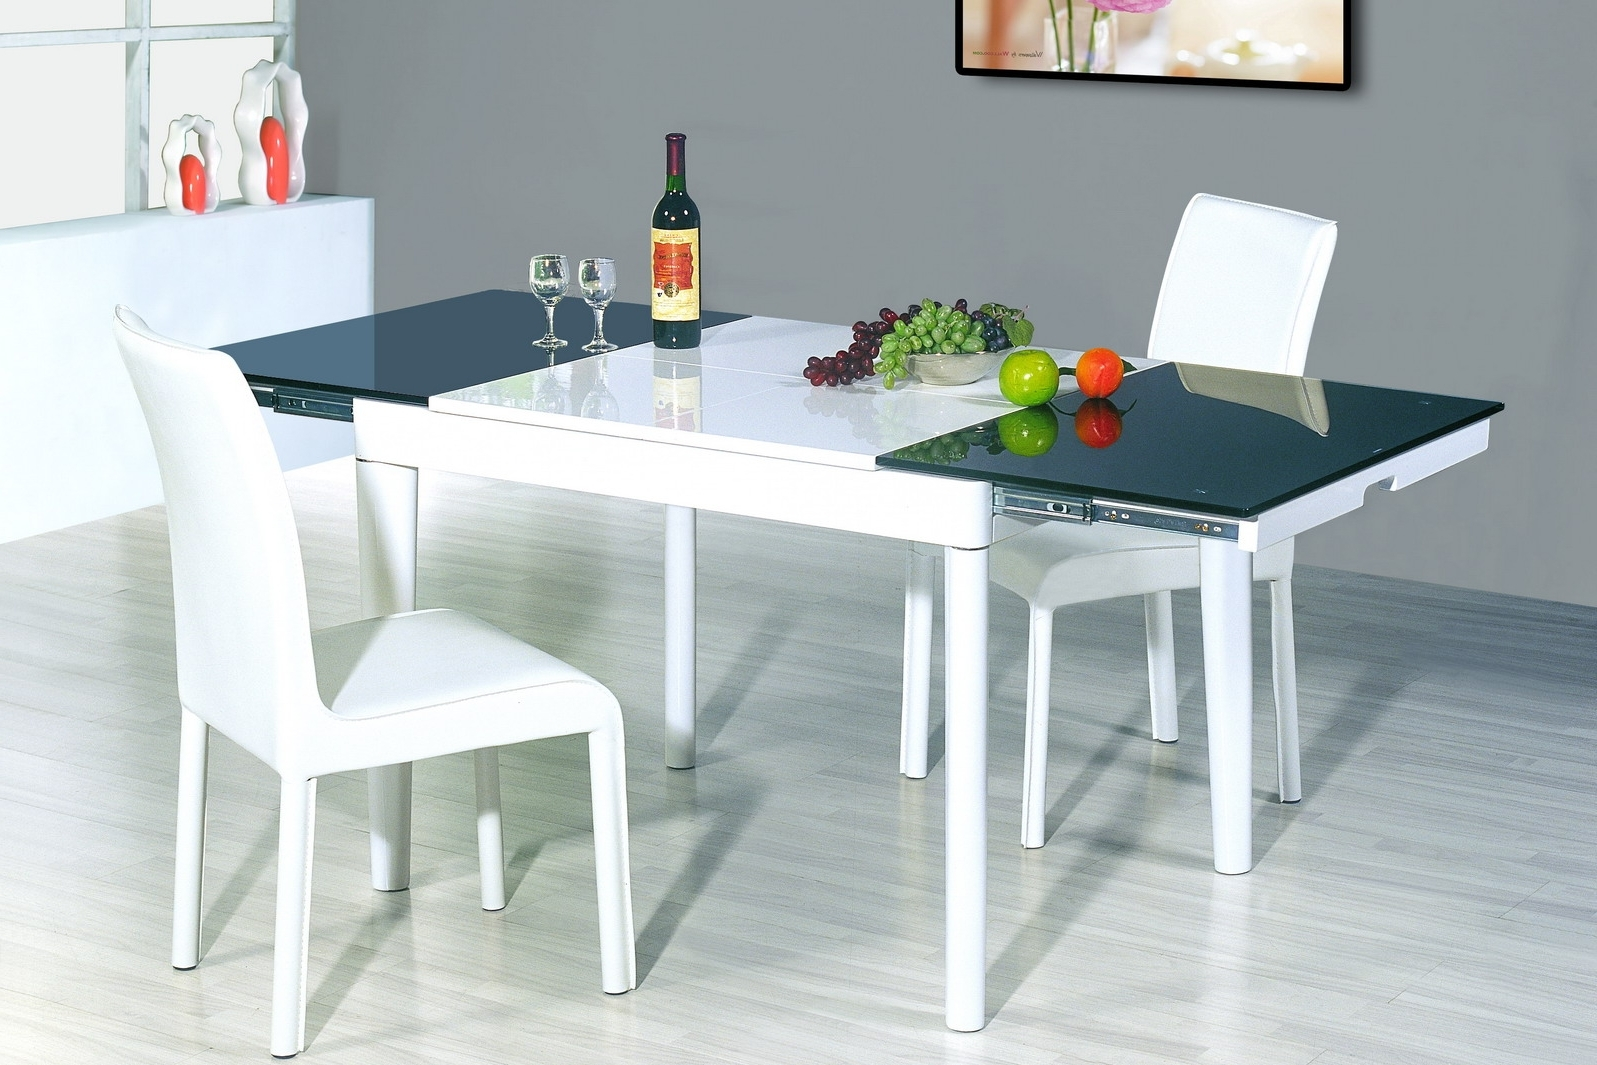 Fancy Futuristic Modern Kitchen Table Set With Expandable Top And Inside Favorite Small Extendable Dining Table Sets (View 5 of 25)